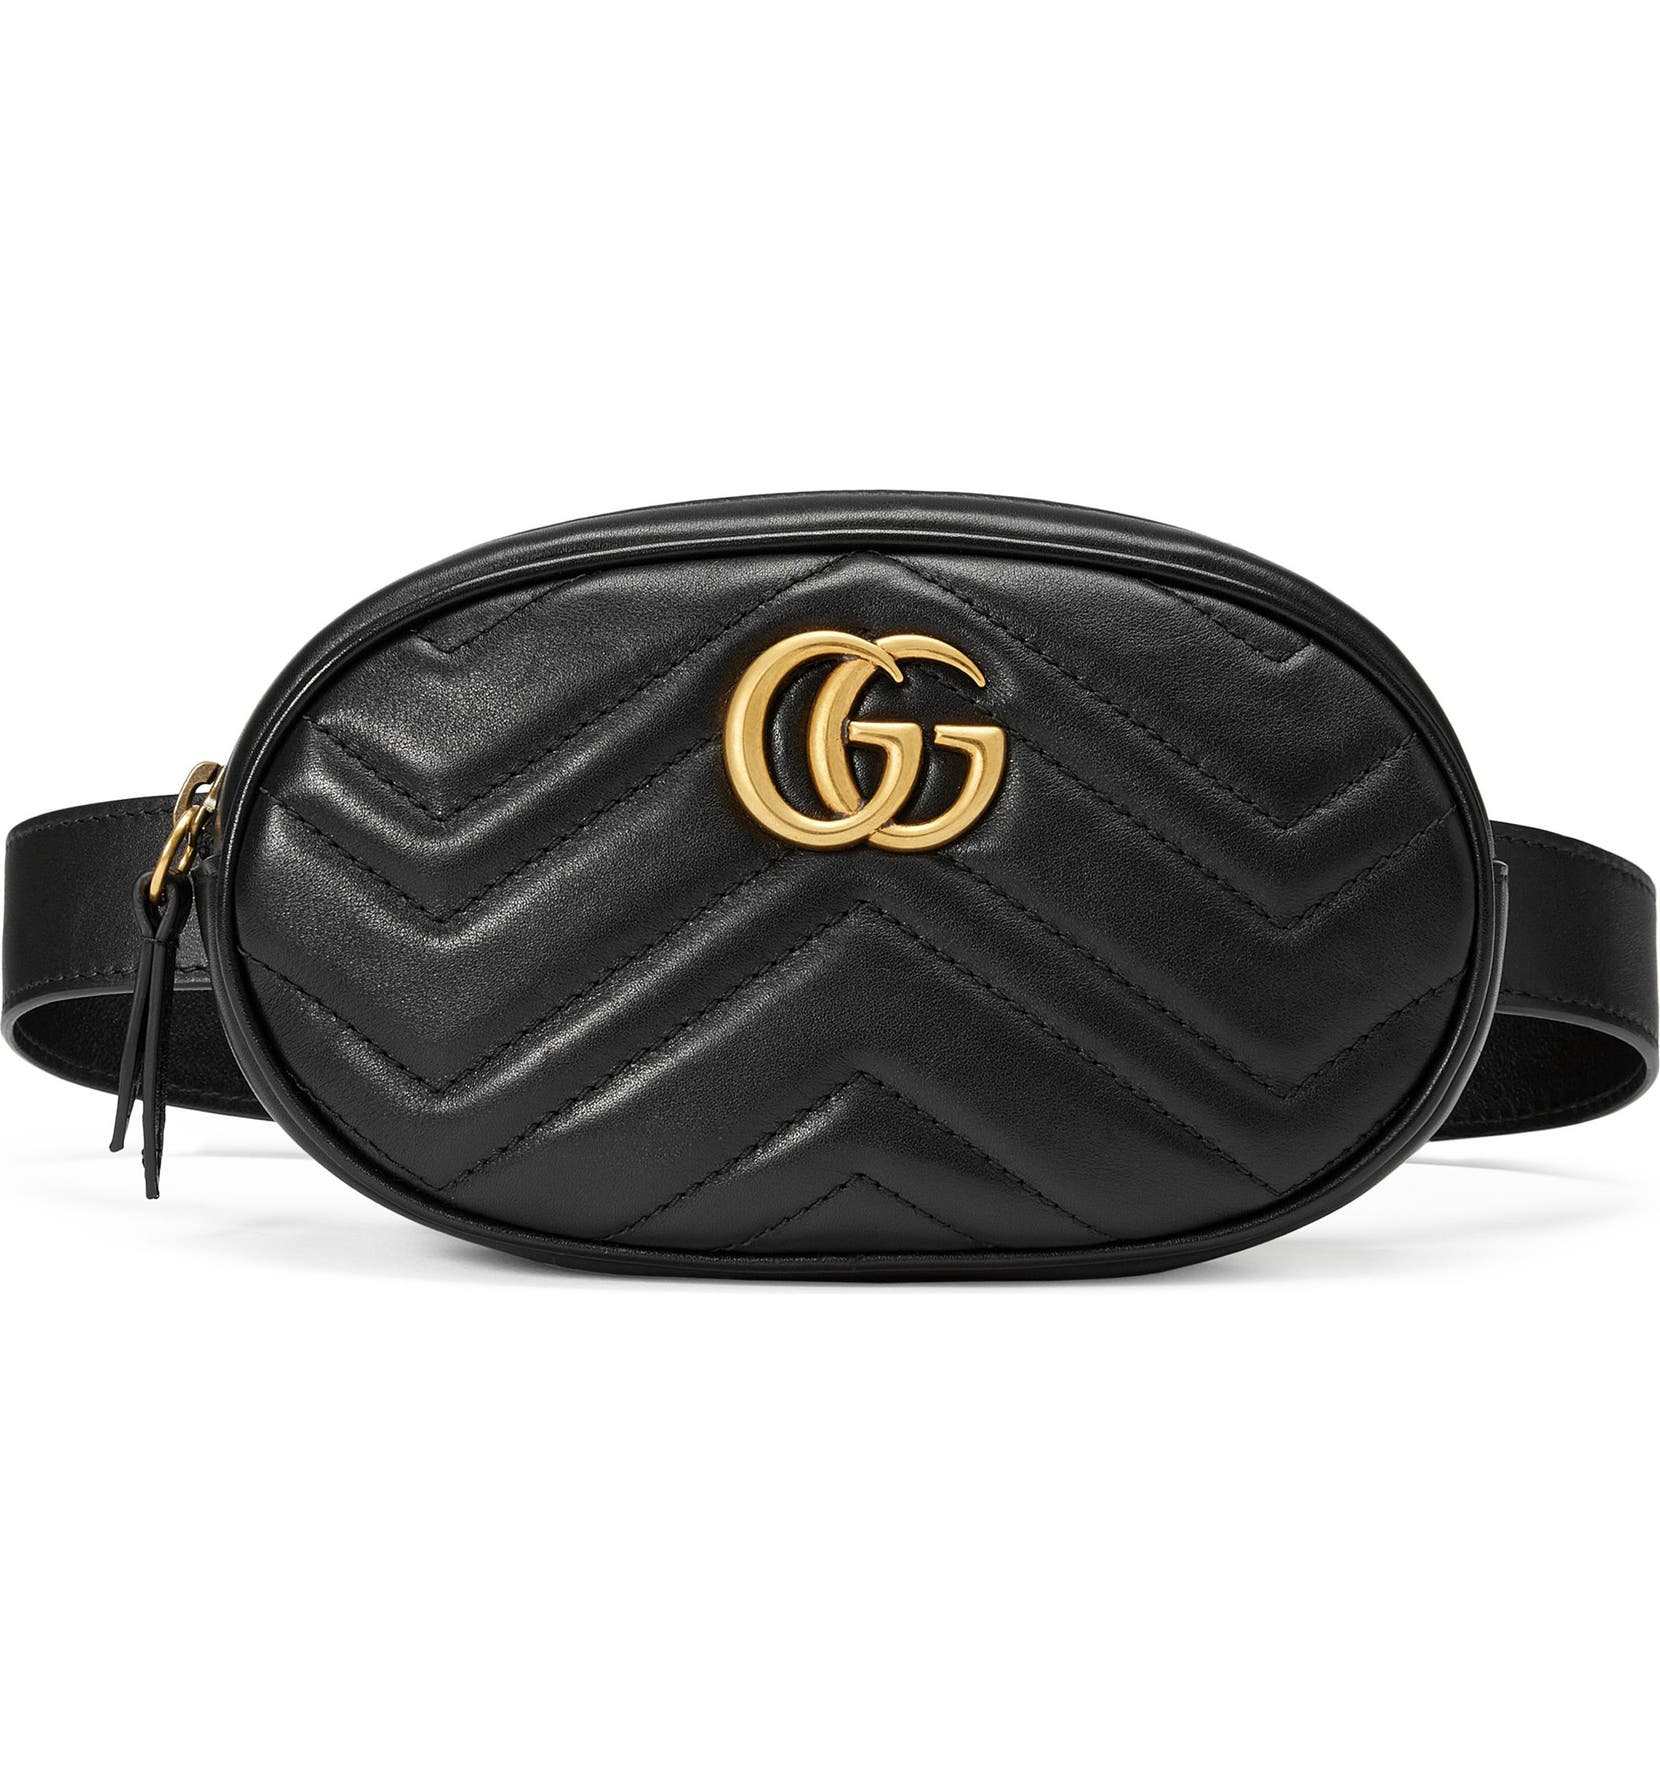 60a73588292 Gucci GG Marmont Matelassé Leather Belt Bag